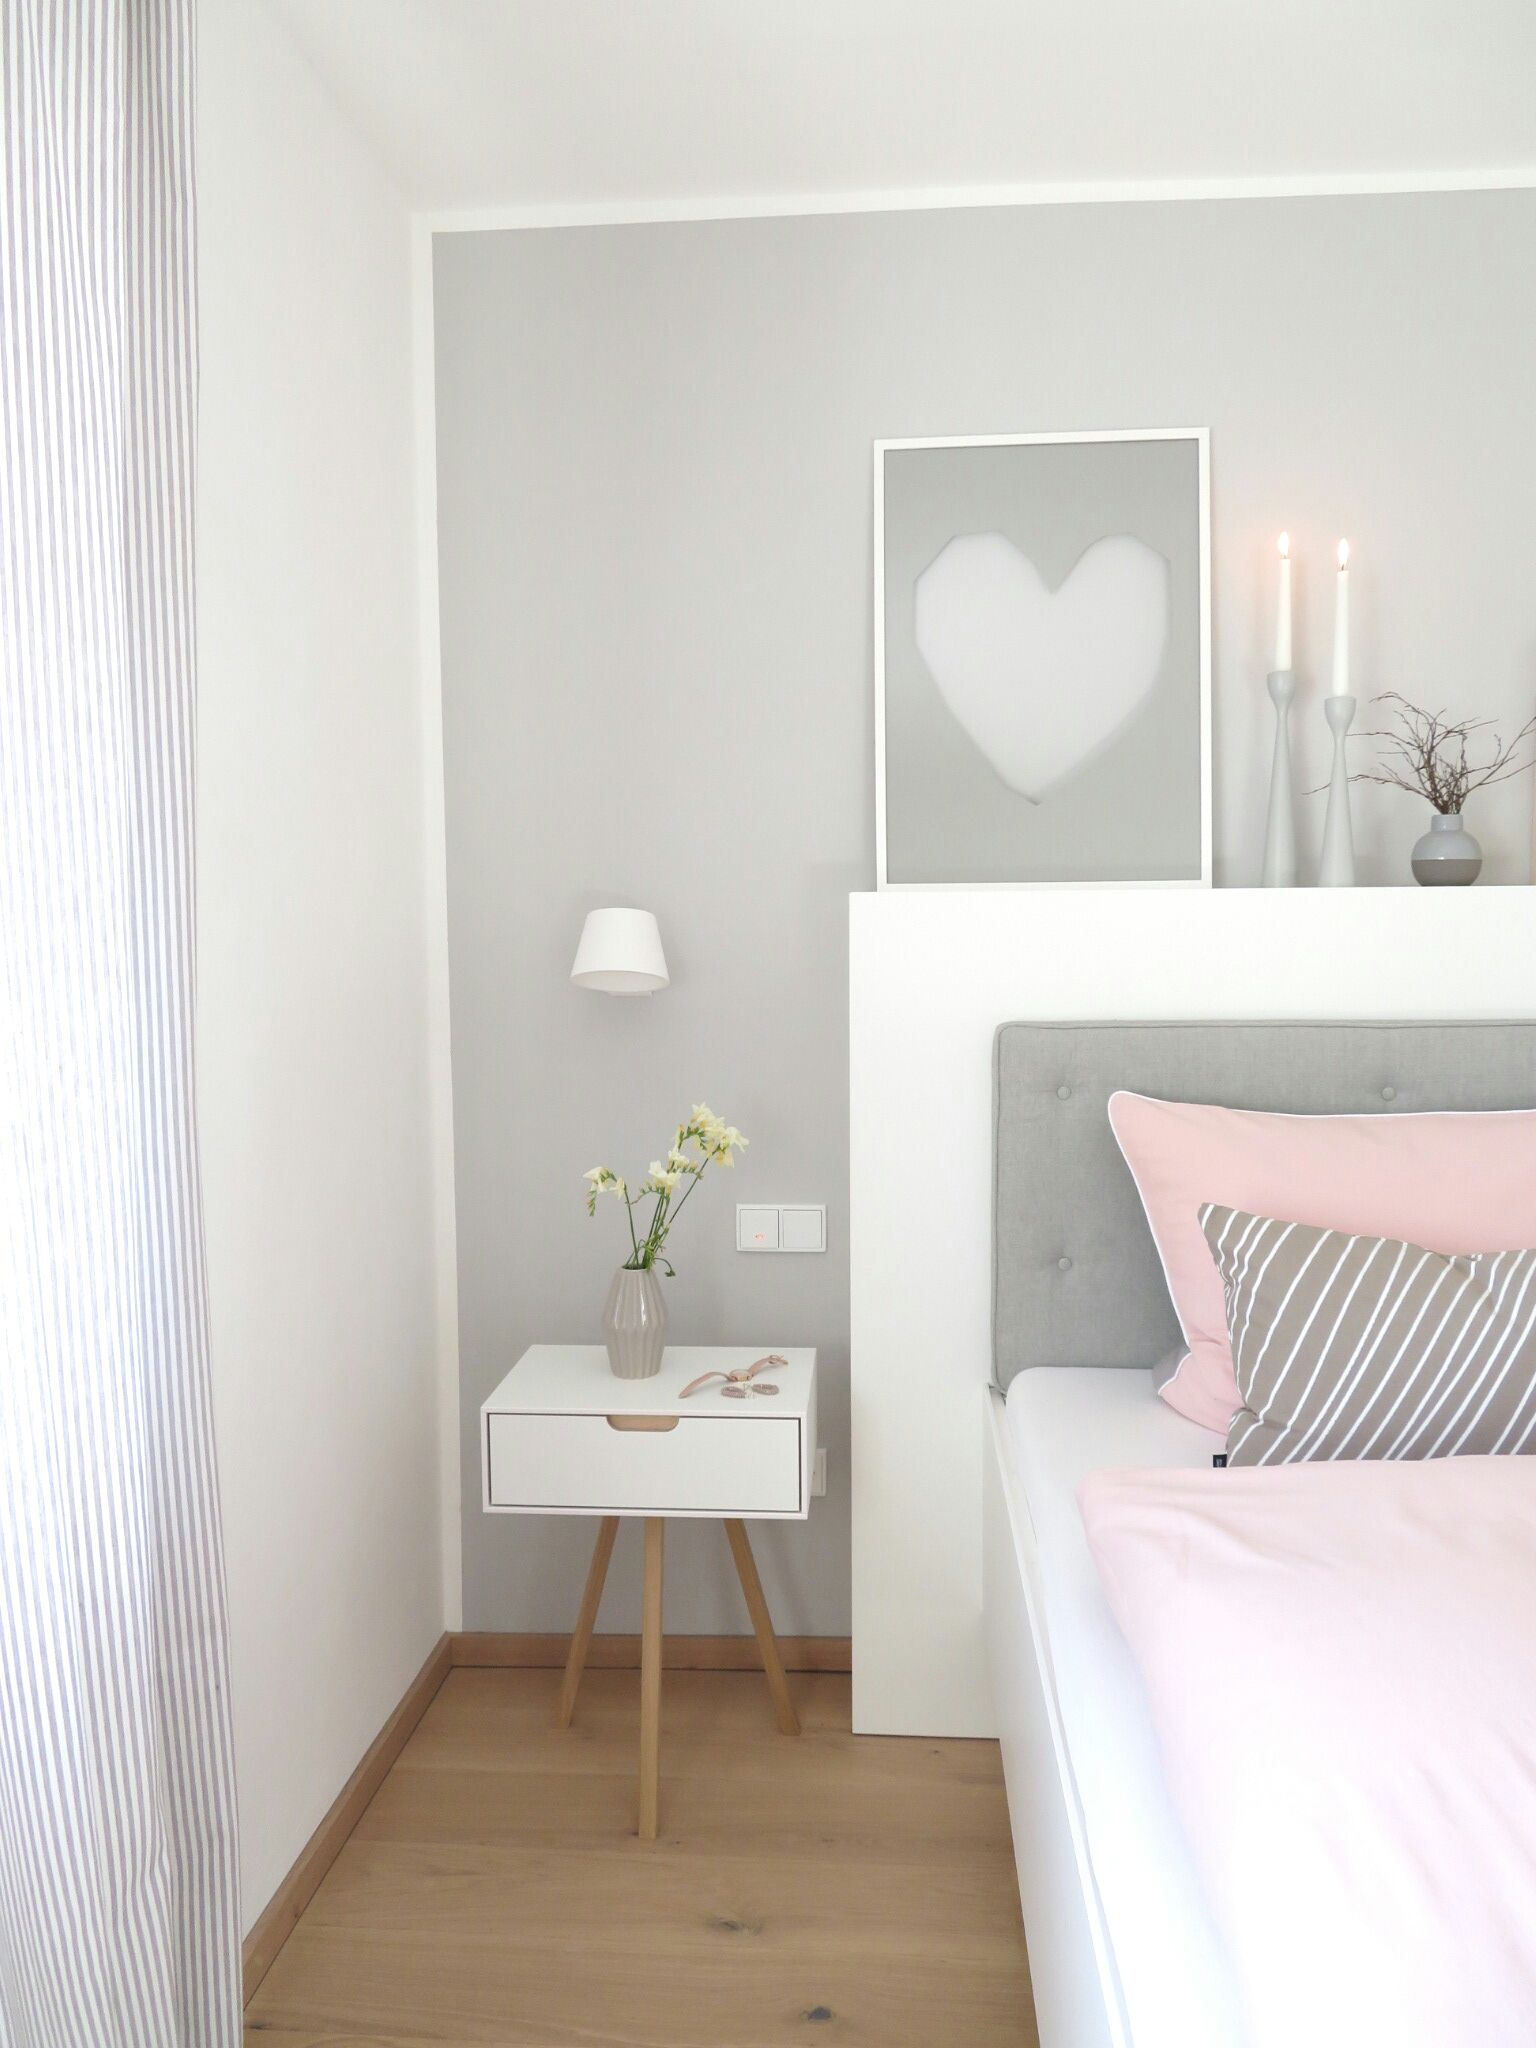 Schlafzimmer Wandfarbe Rosa Rosa Ideas For The House Bedroom Decor Home Bedroom Bedroom